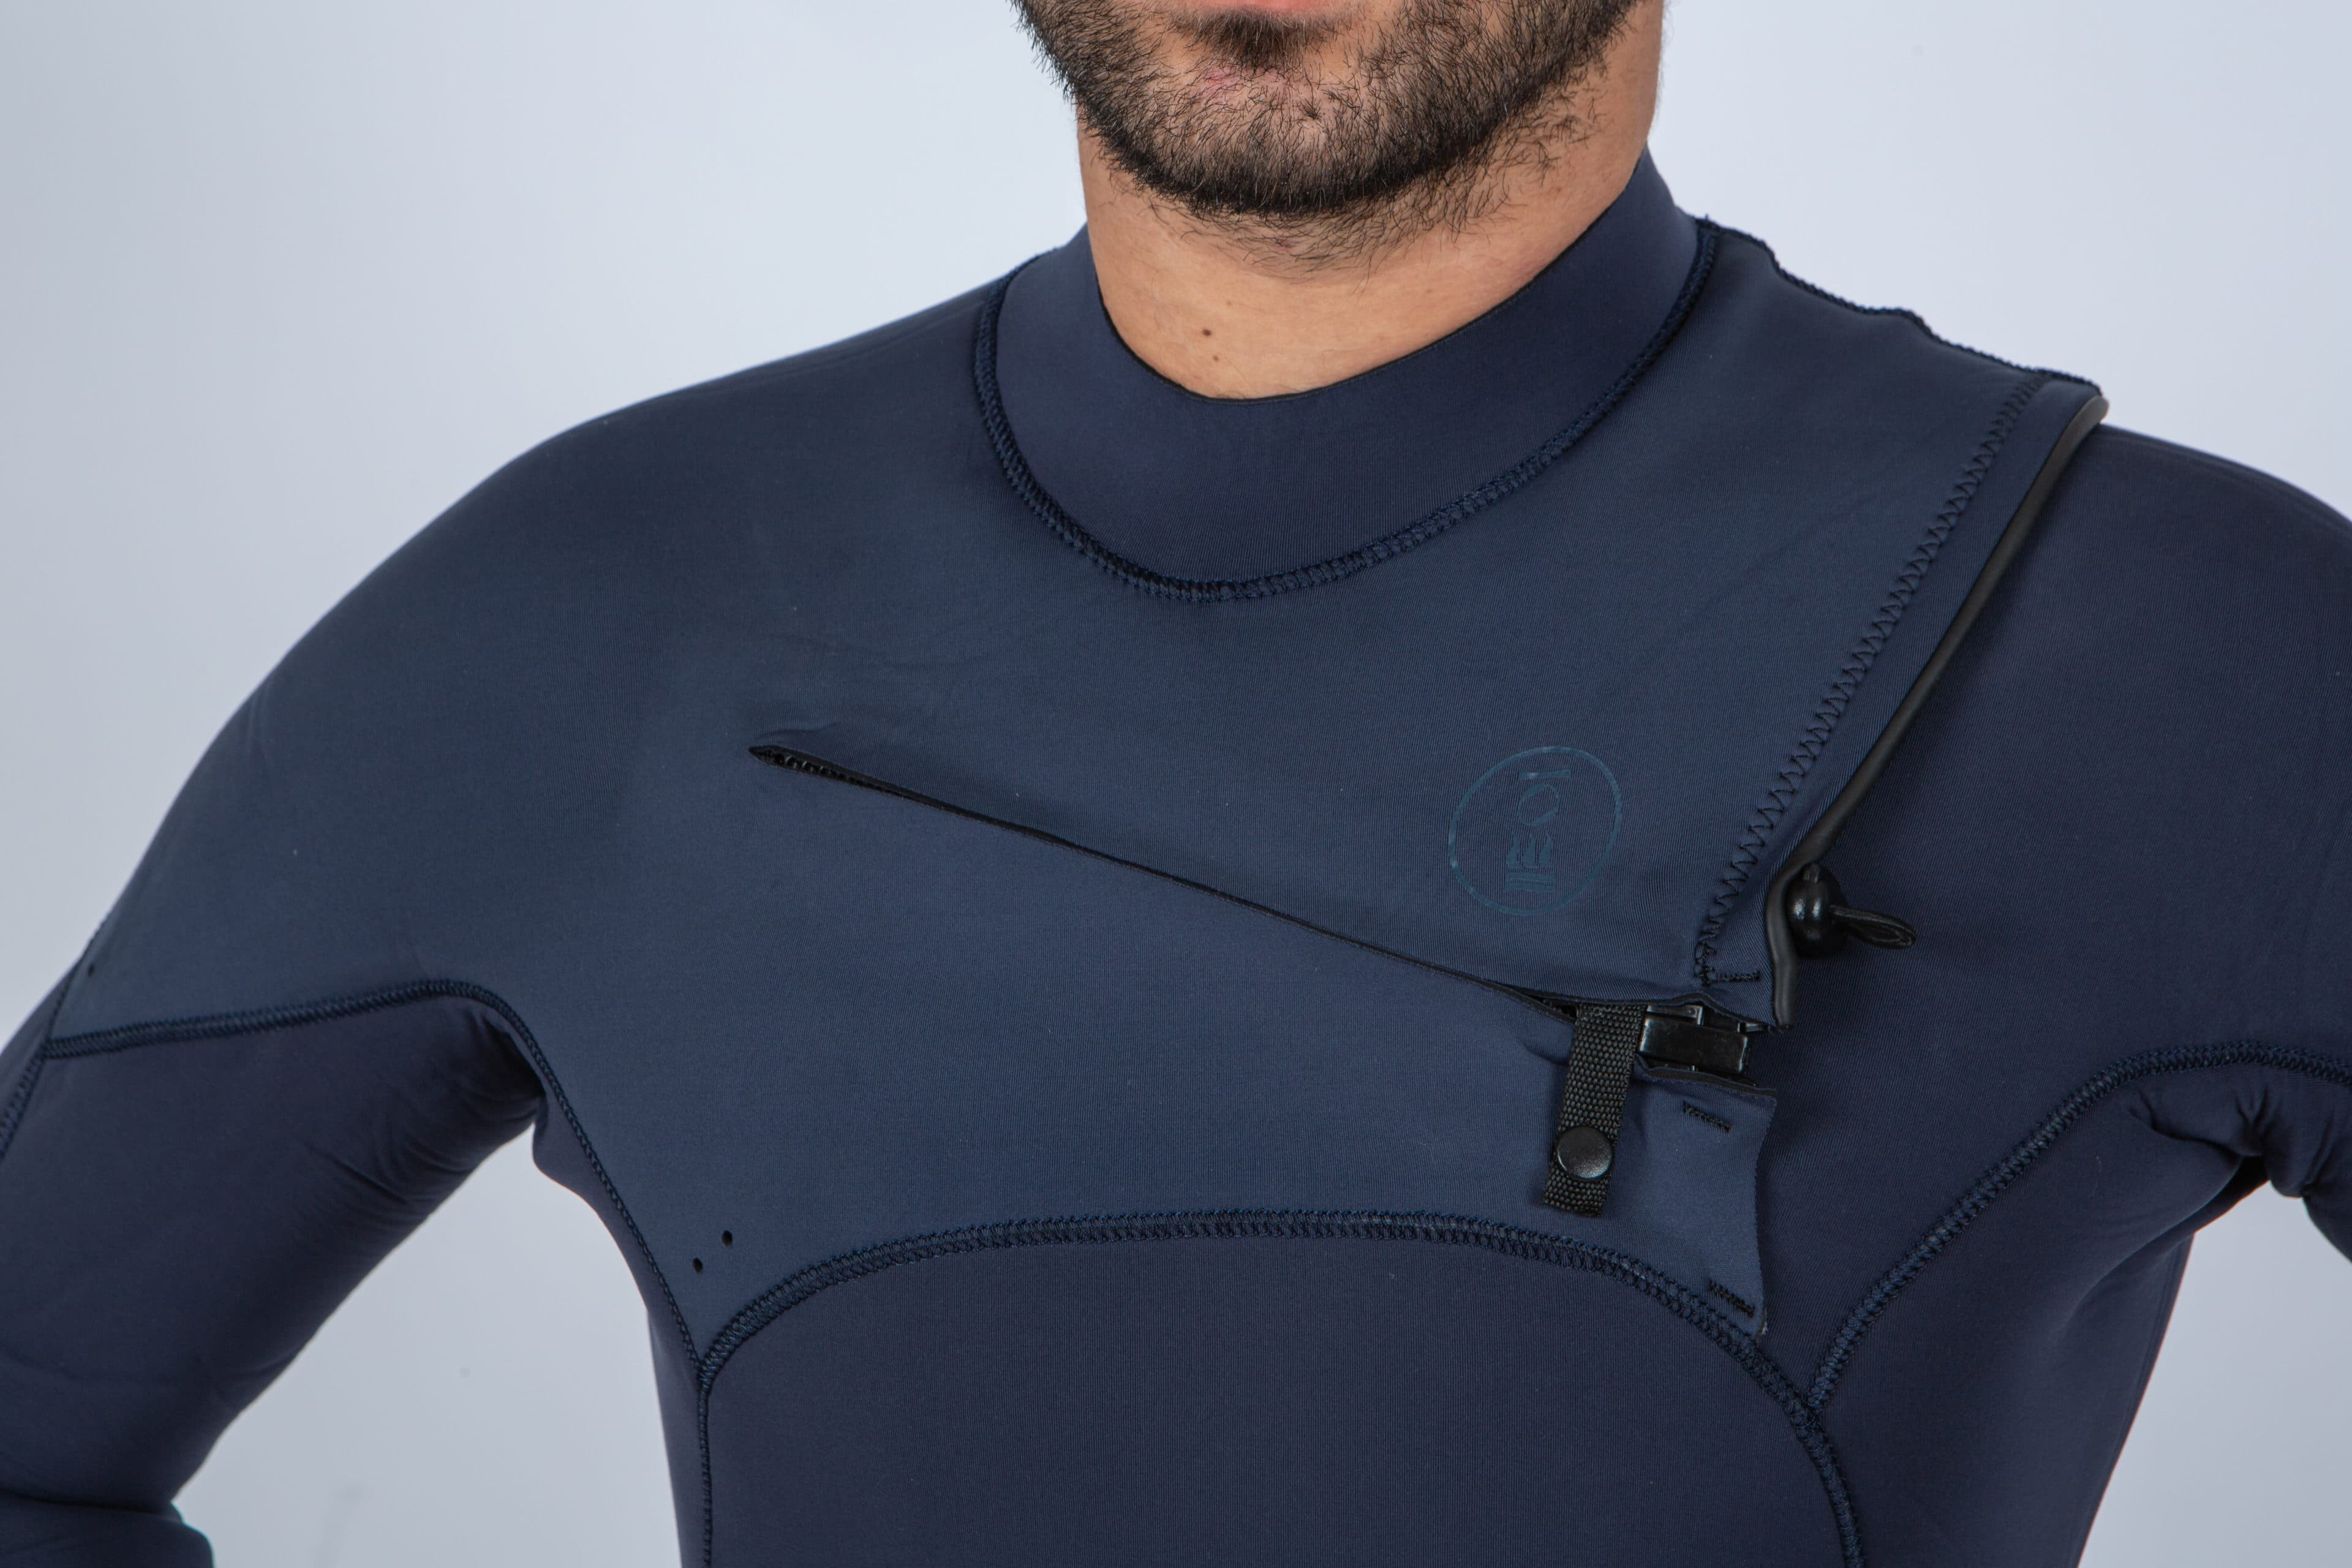 Mini chest zipper on Fourth Element's Surface Wetsuit